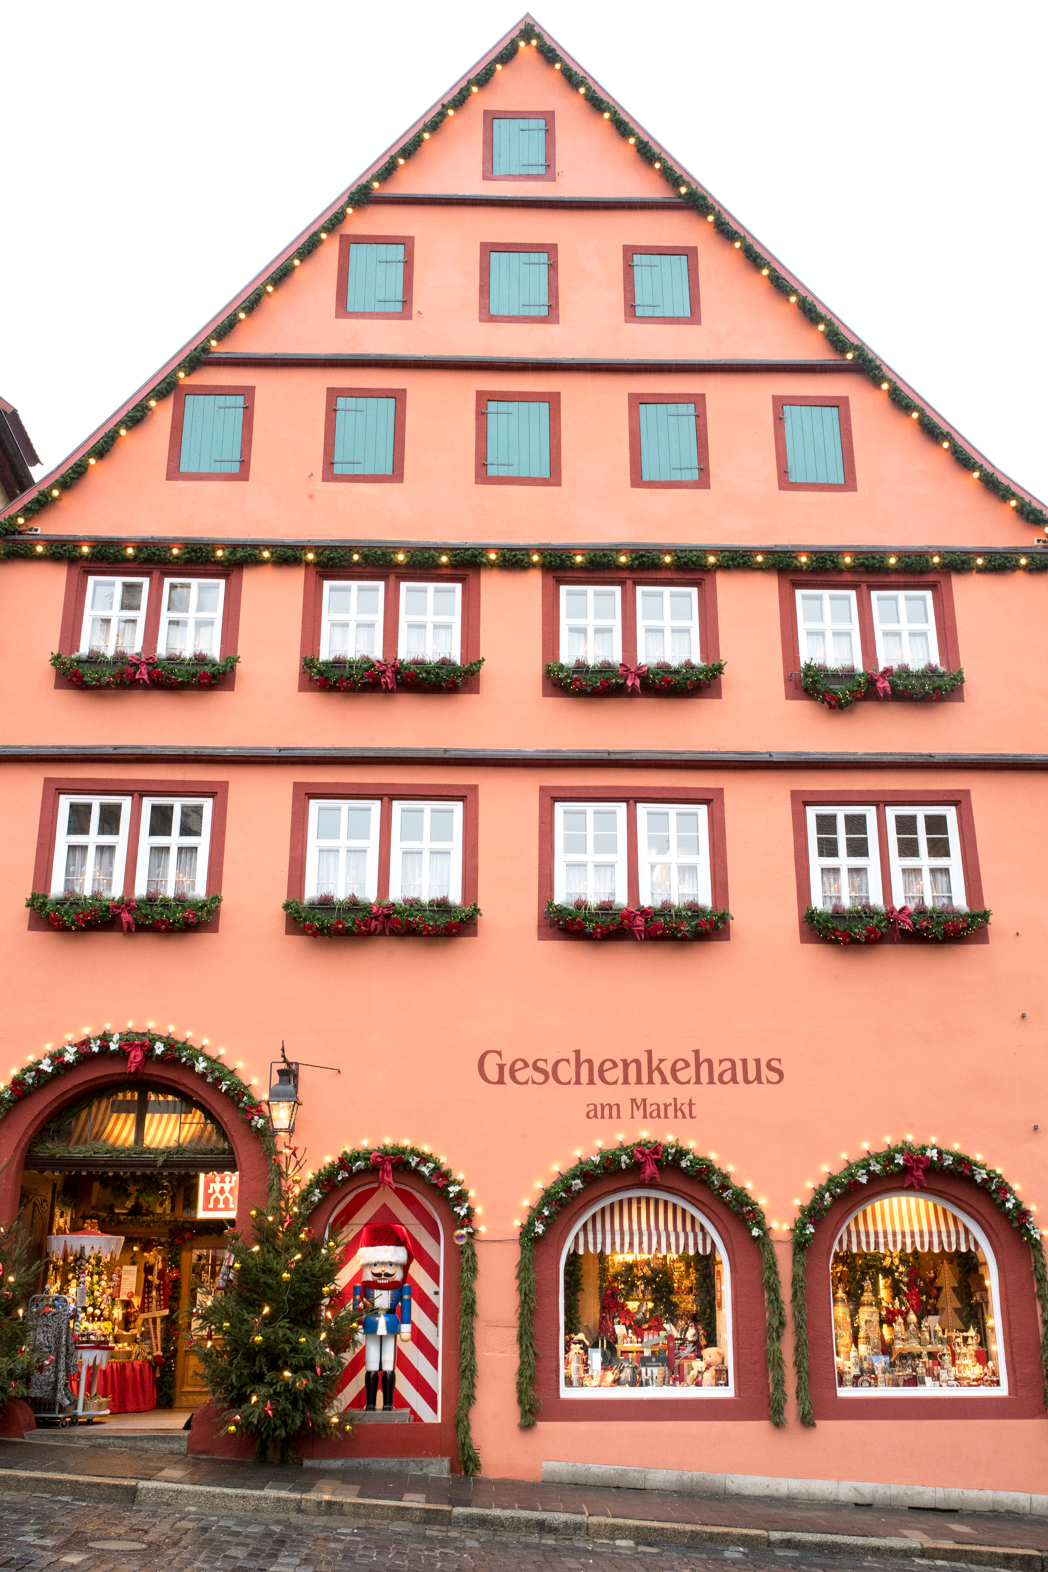 Stacie Flinner Christmas Rothenburg ob der Tauber Germany-6.jpg